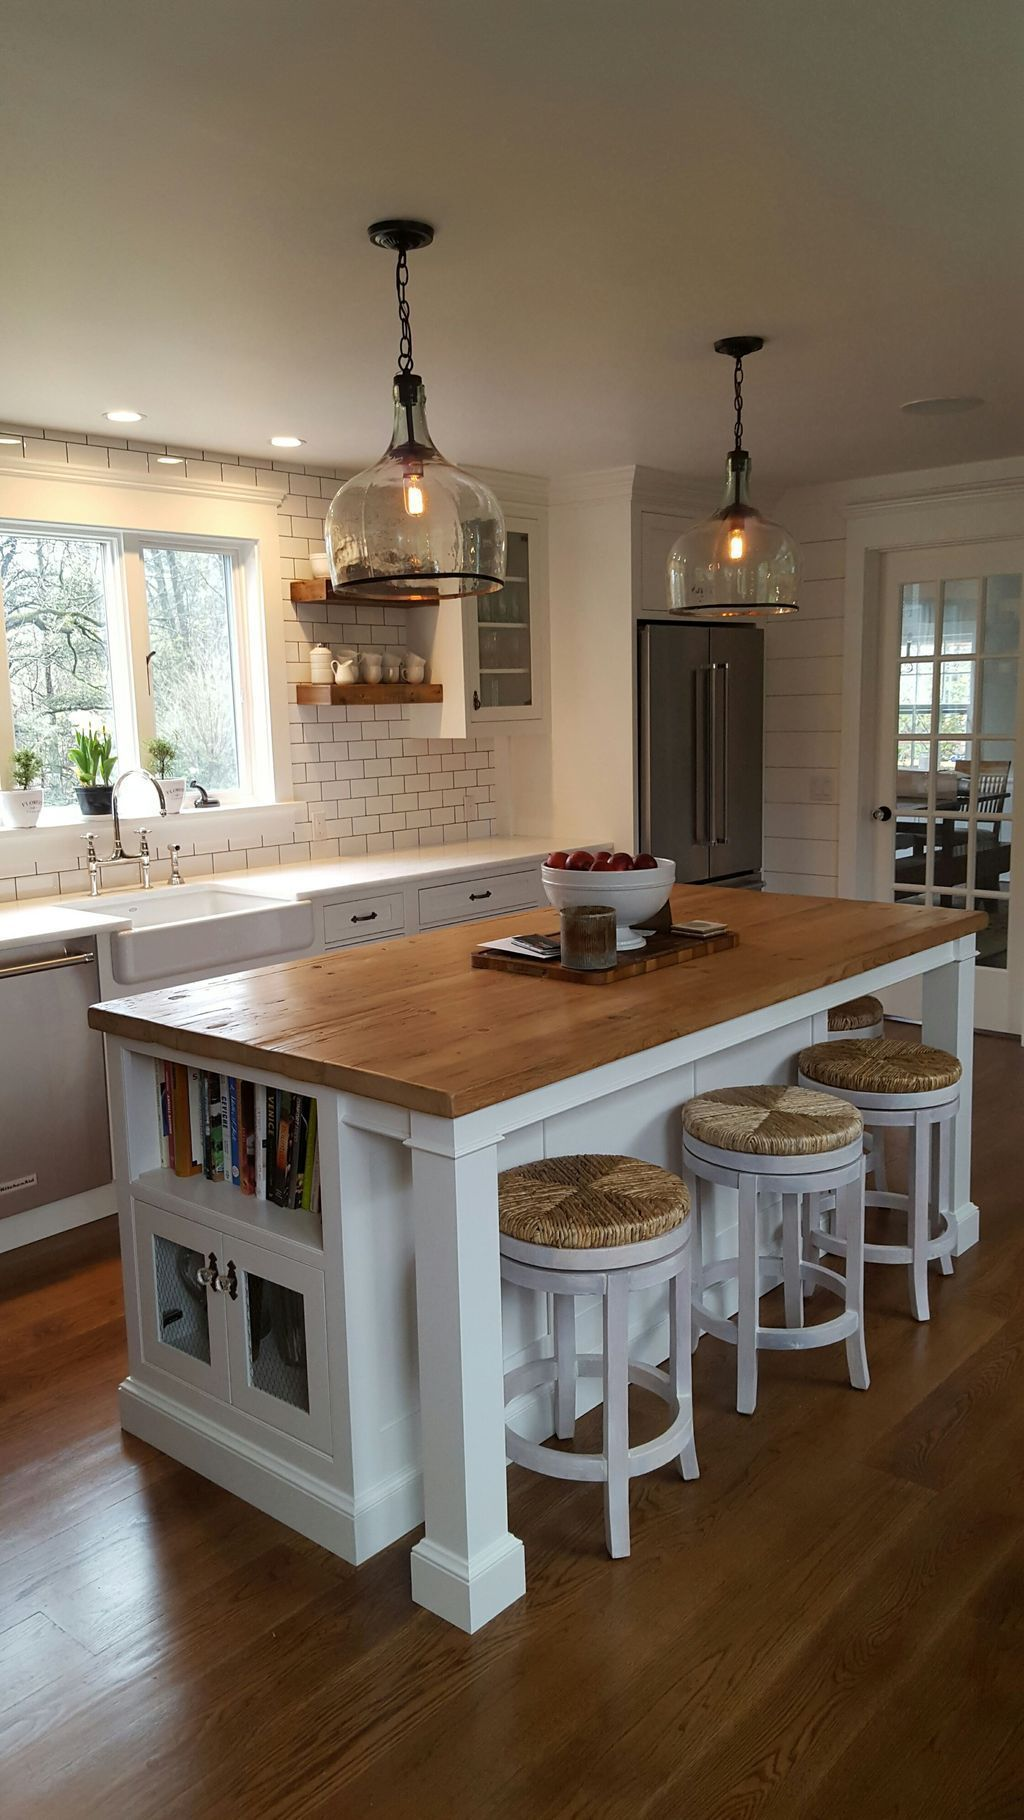 From kitchen diner lighting ideas to pendant and ceiling lighting ...